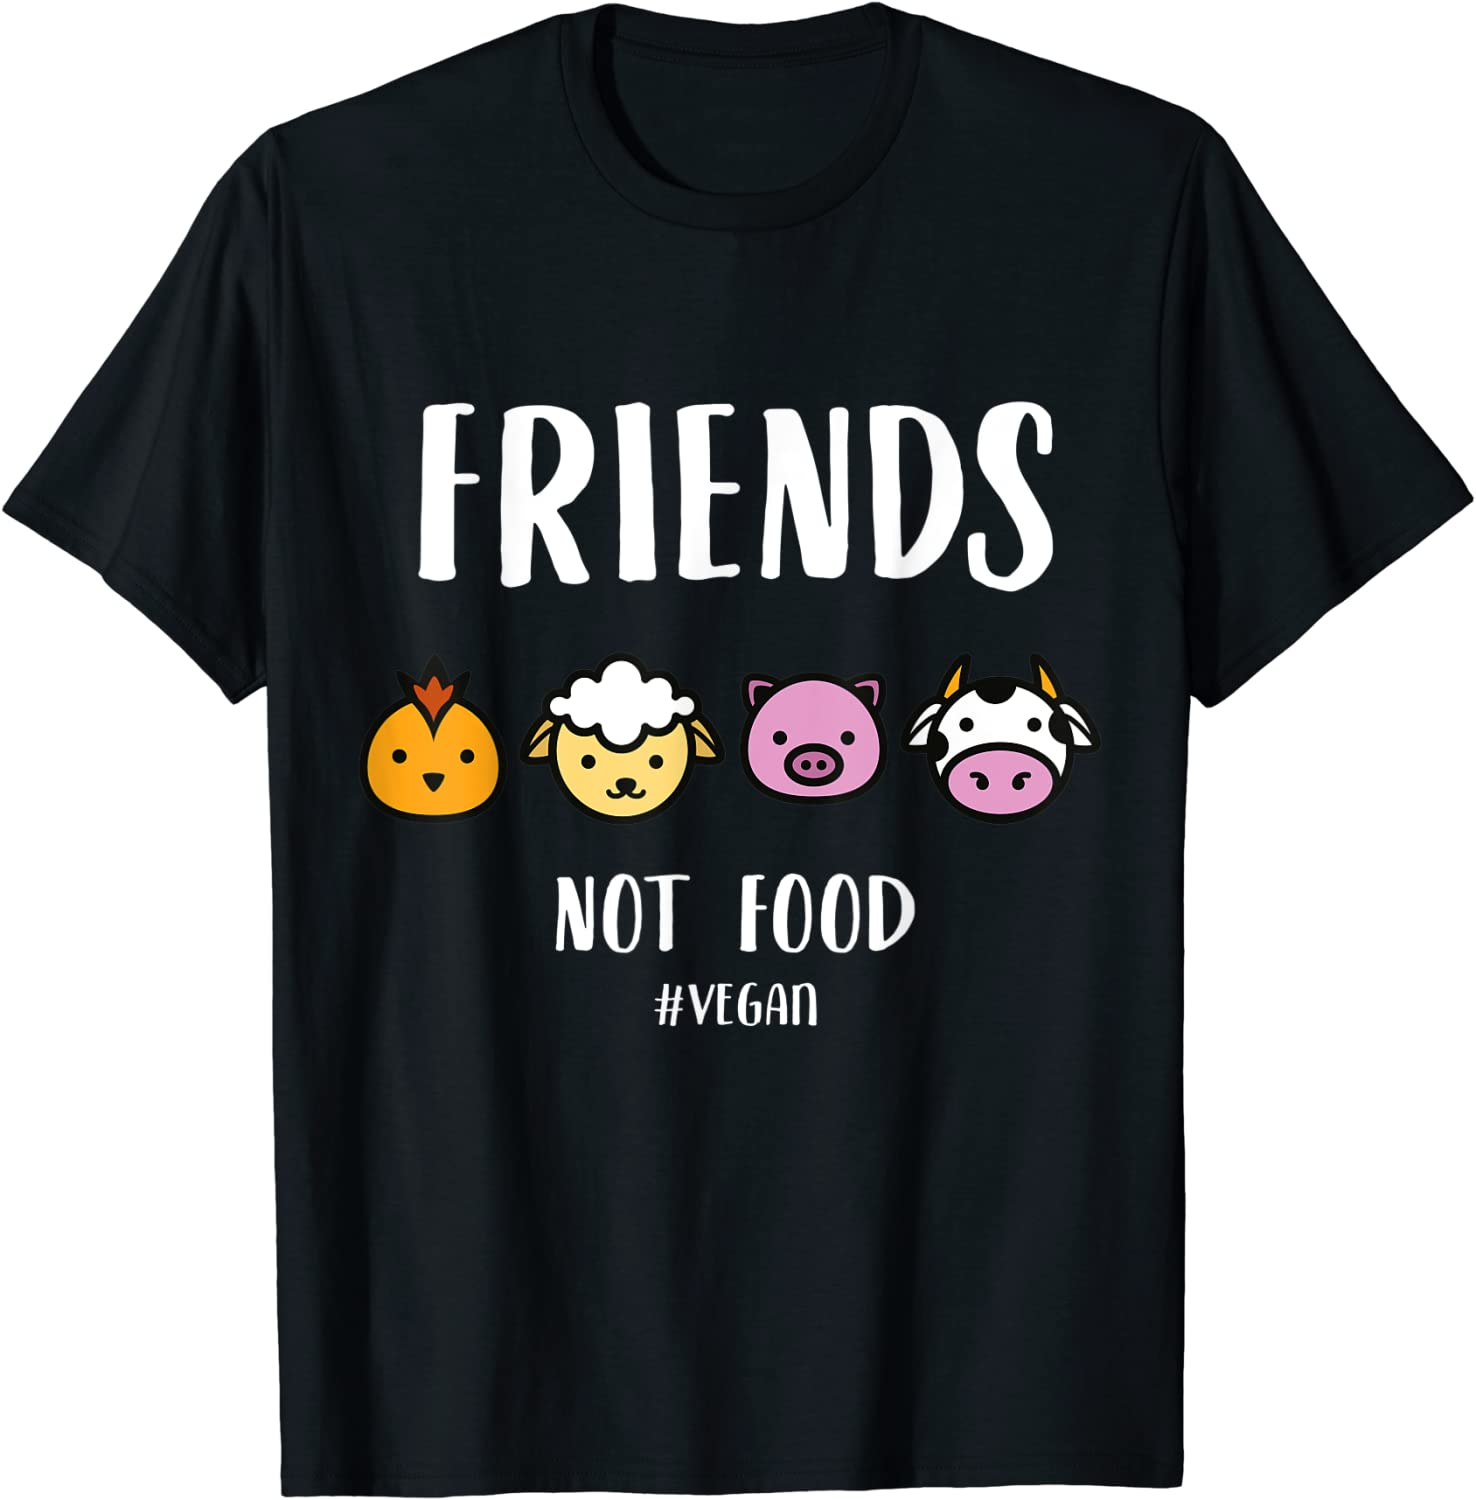 Friends Not Food T-Shirt for Vegans and Vegetarians